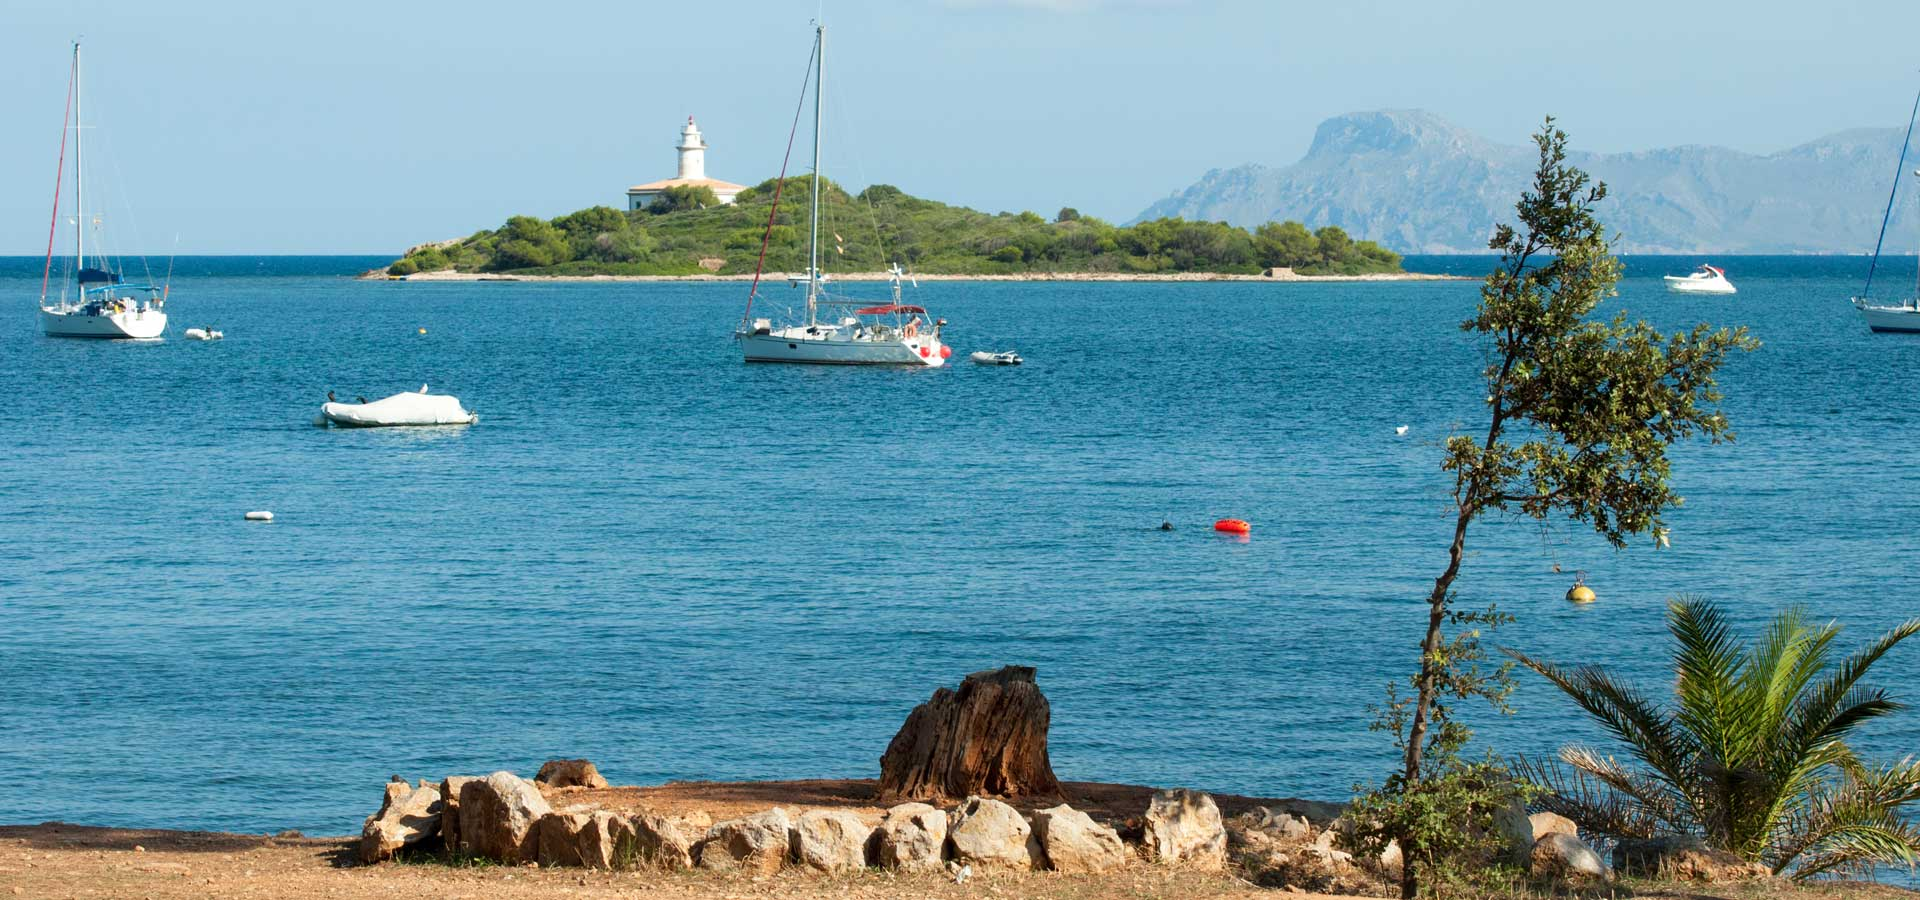 Alcanada property market is set in the middle of a beautiful nature of Mallorca.